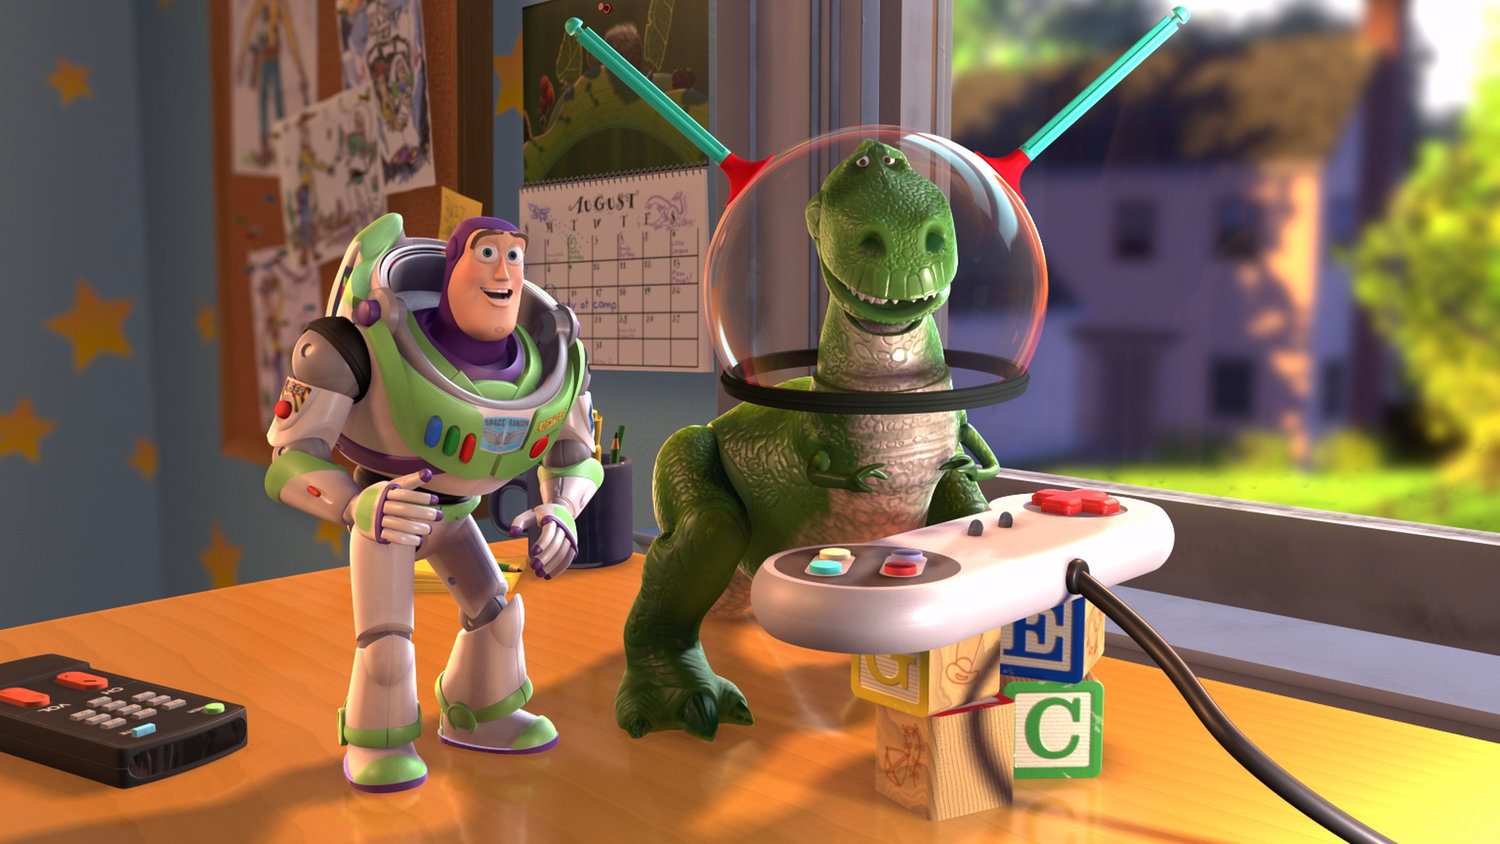 Kingdom Hearts 3 S Latest Trailer Features Toy Story Gametyrant